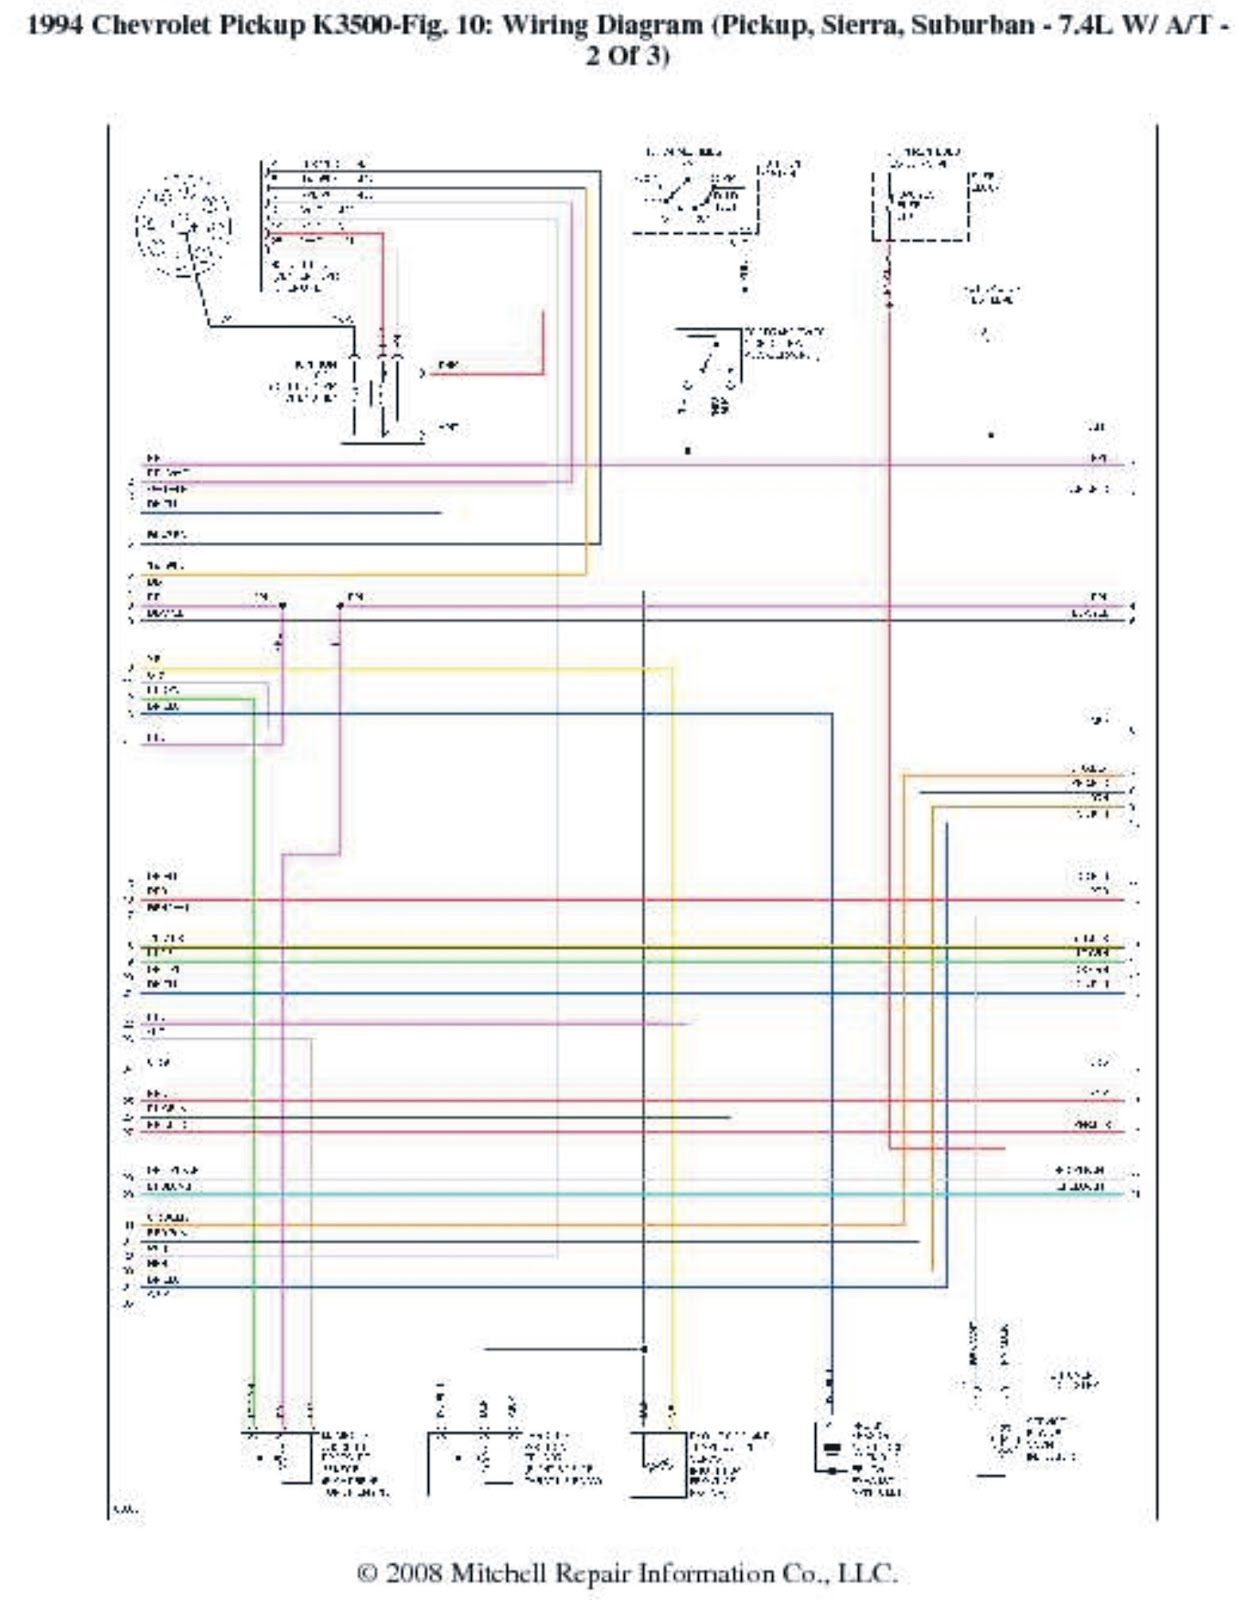 1994+chevrolet+pick+up+K3500 82 chevy s10 fuse box wiring diagram simonand 2002 Audi S4 at bakdesigns.co